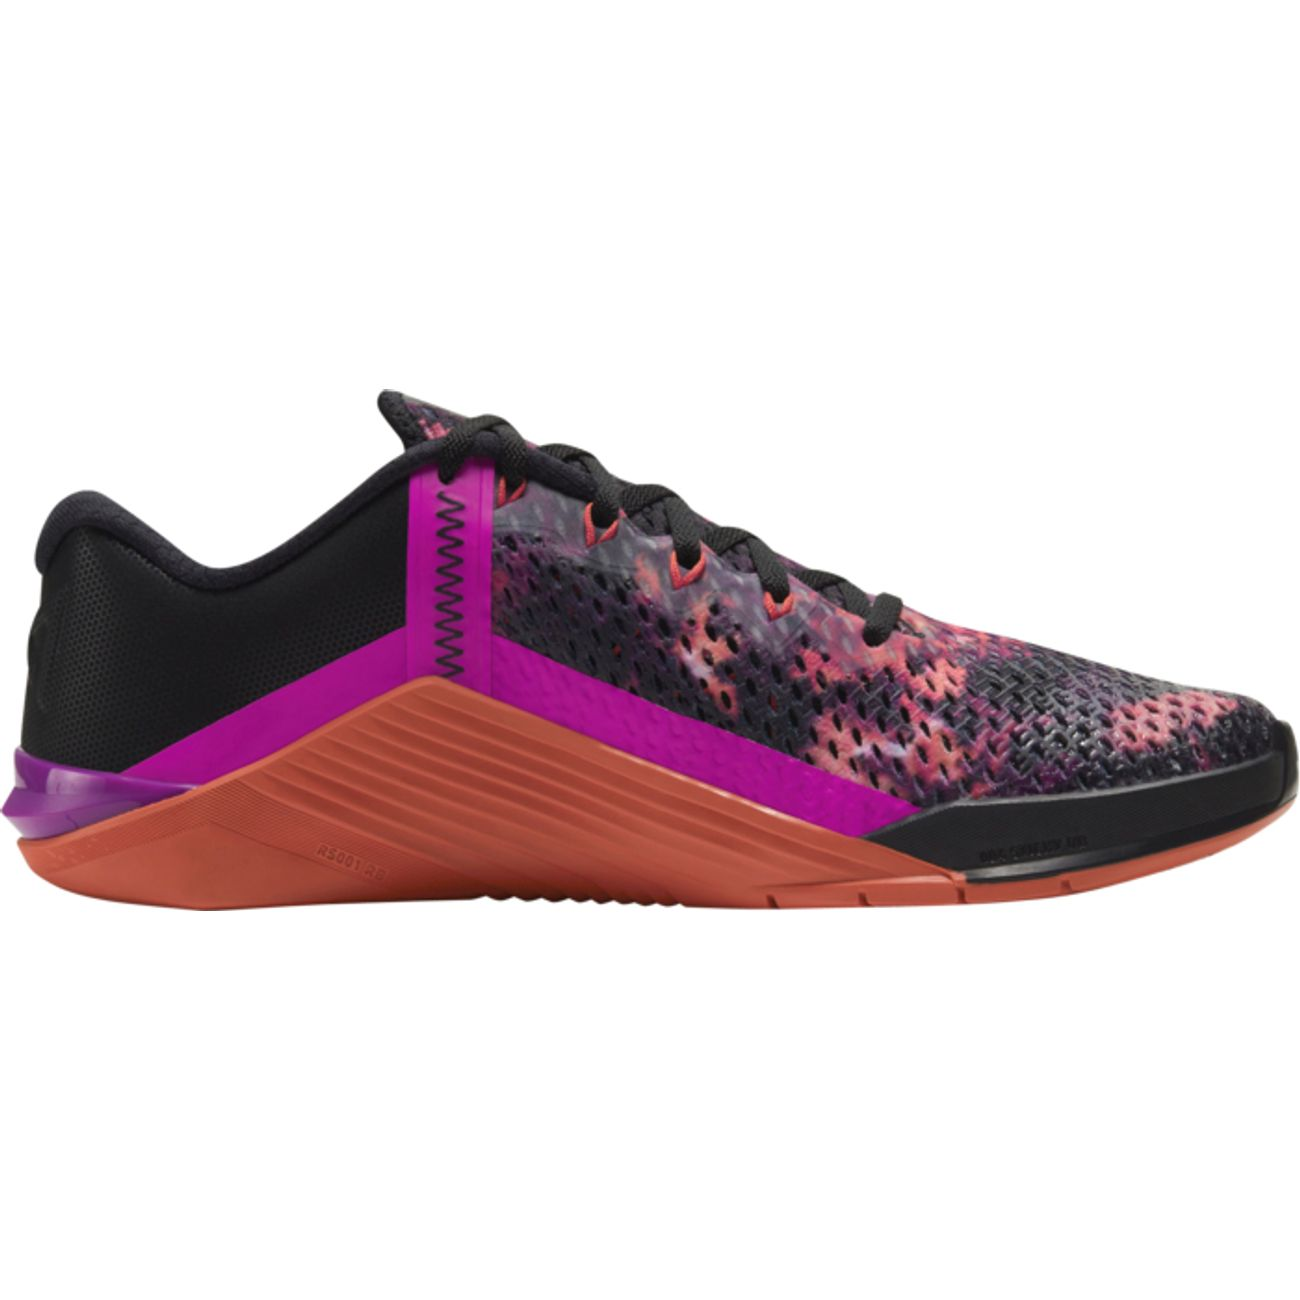 CHAUSSURES BASSES Musculation homme NIKE METCON 6